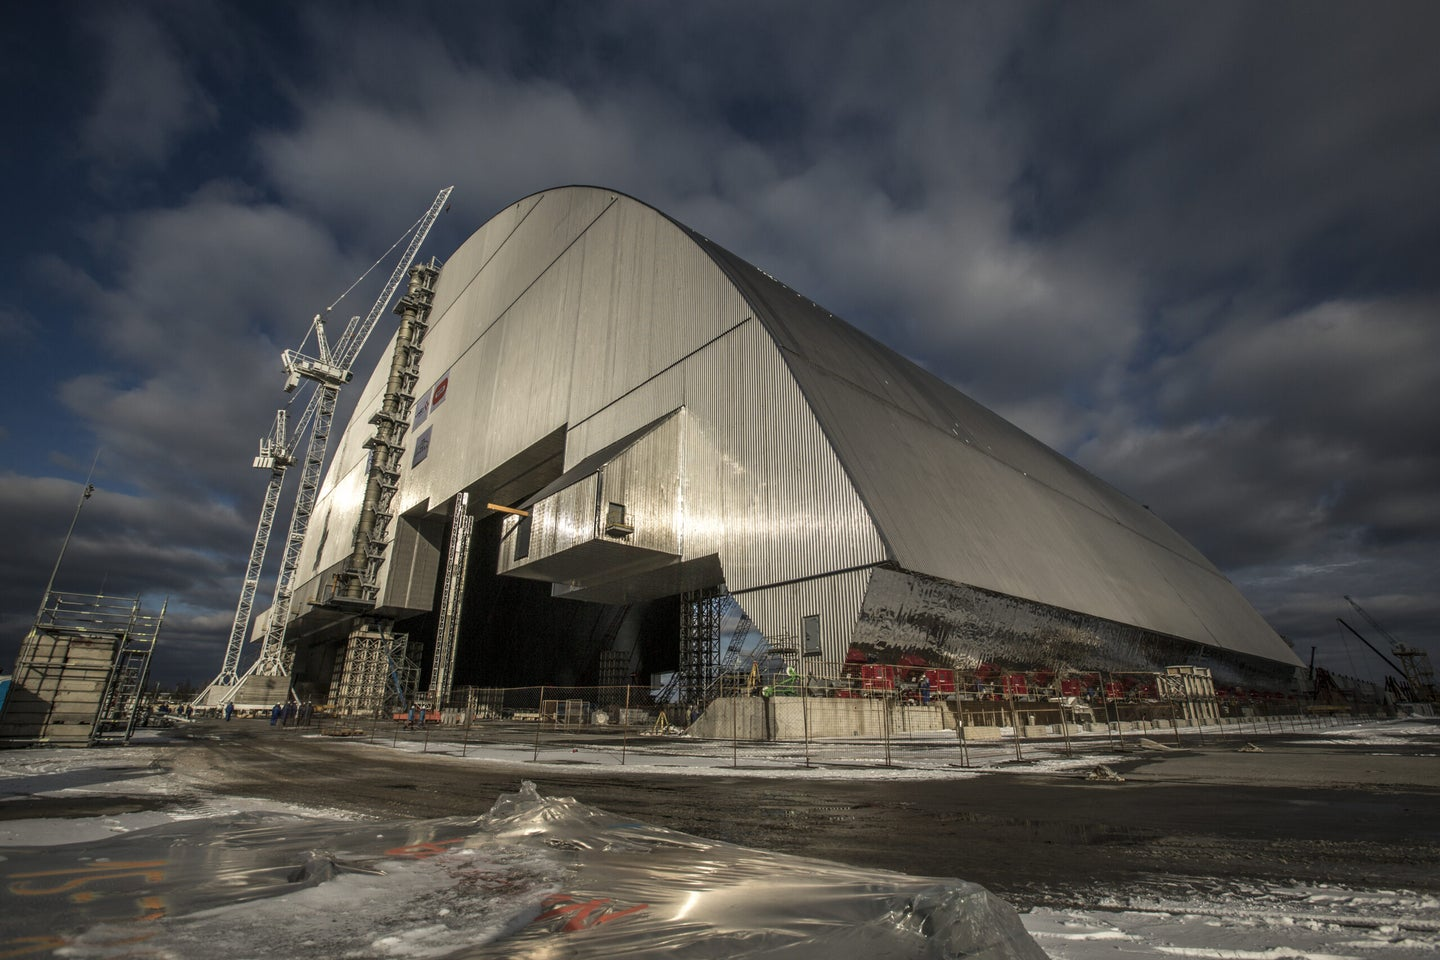 Watch the Chernobyl disaster site finally get properly contained